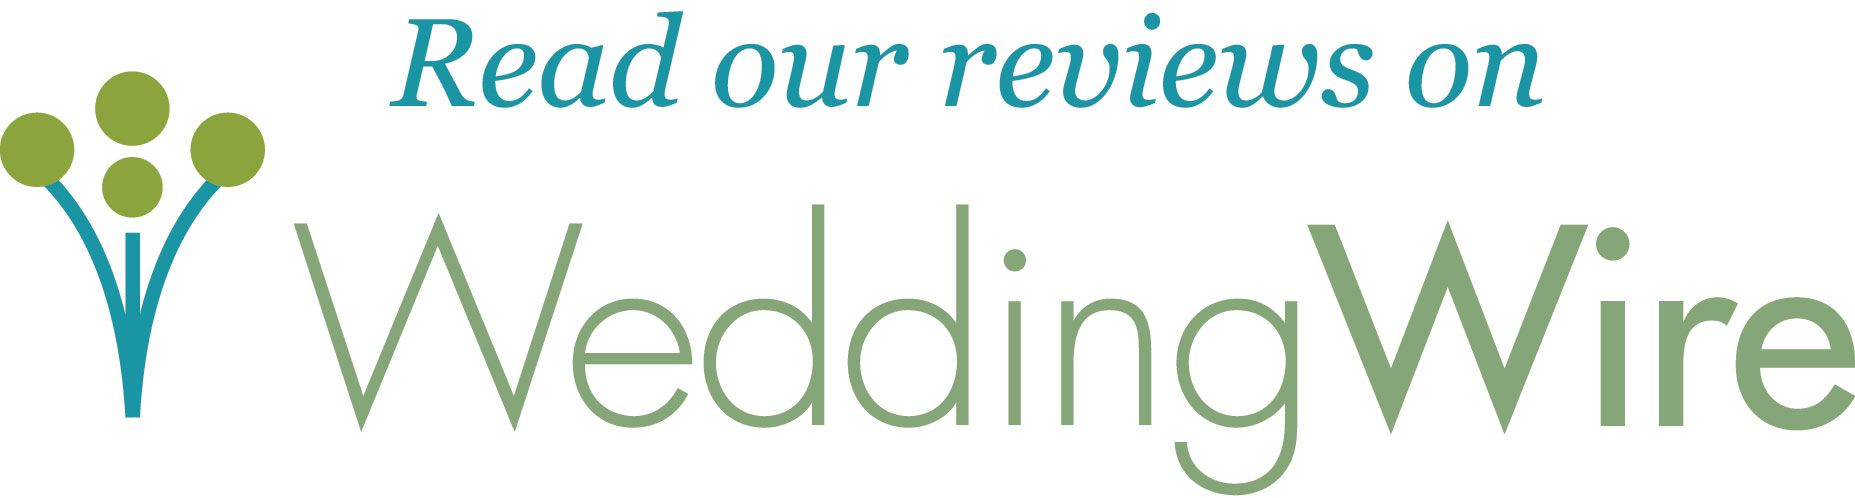 WeddingWire Reviews and Endorsements for WedSafe Wedding Insurance